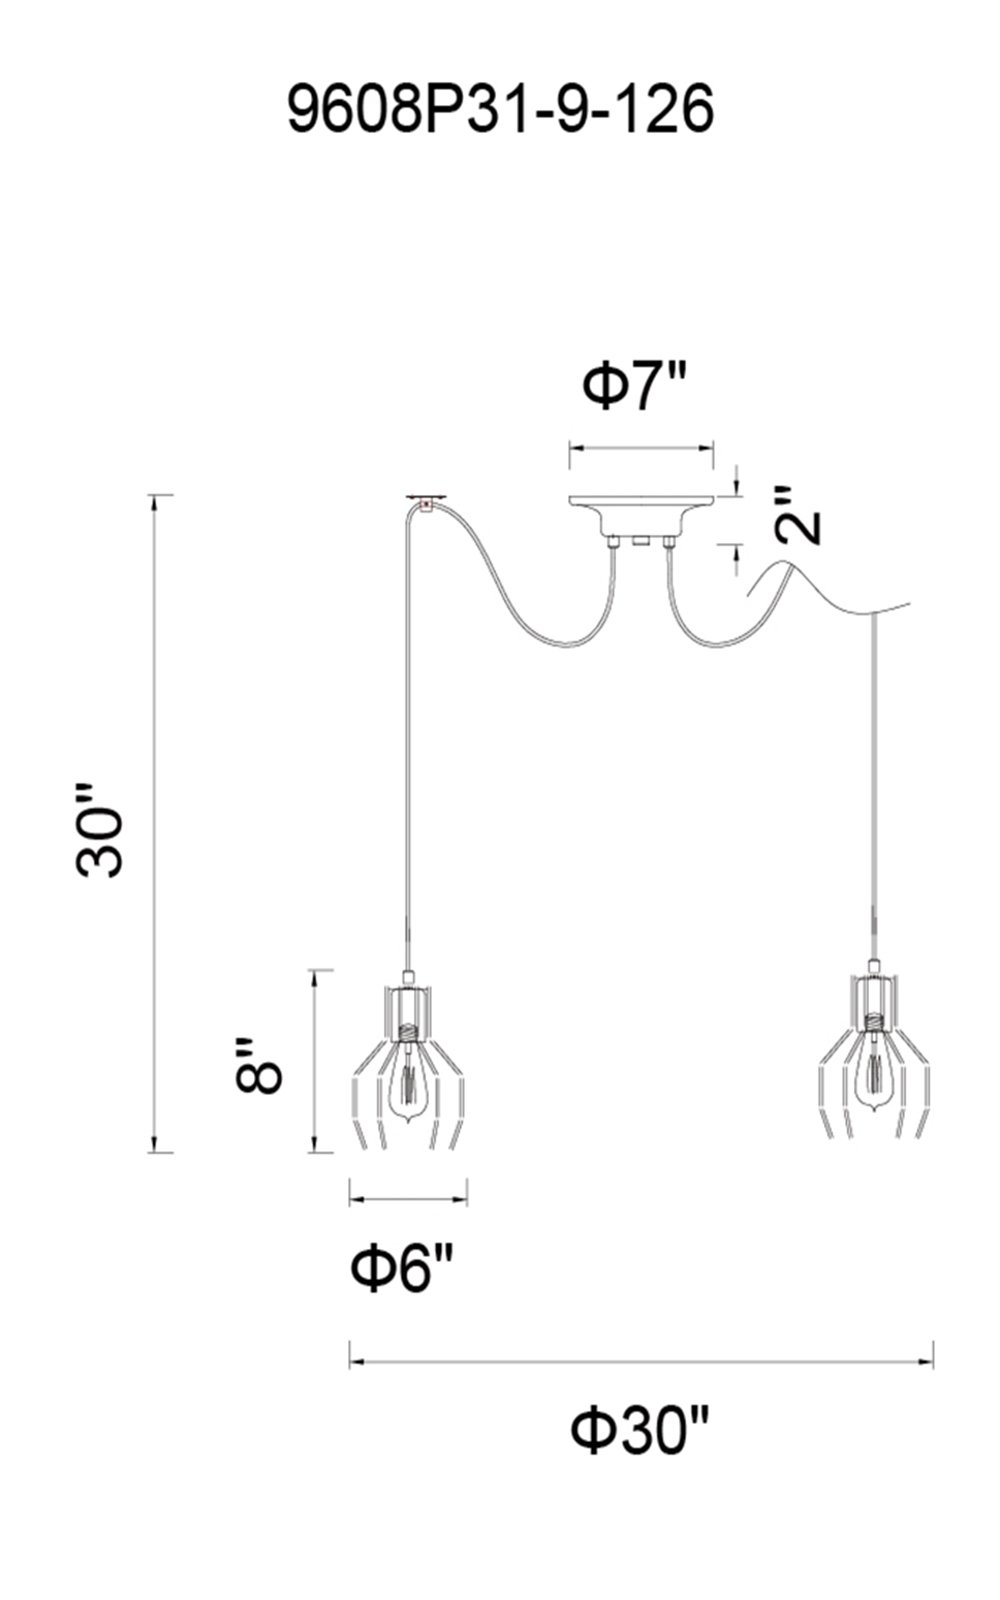 CWI Lighting Secure 9 Light Multi Light Pendant With Chocolate Model: 9608P31-9-126 Line Drawing